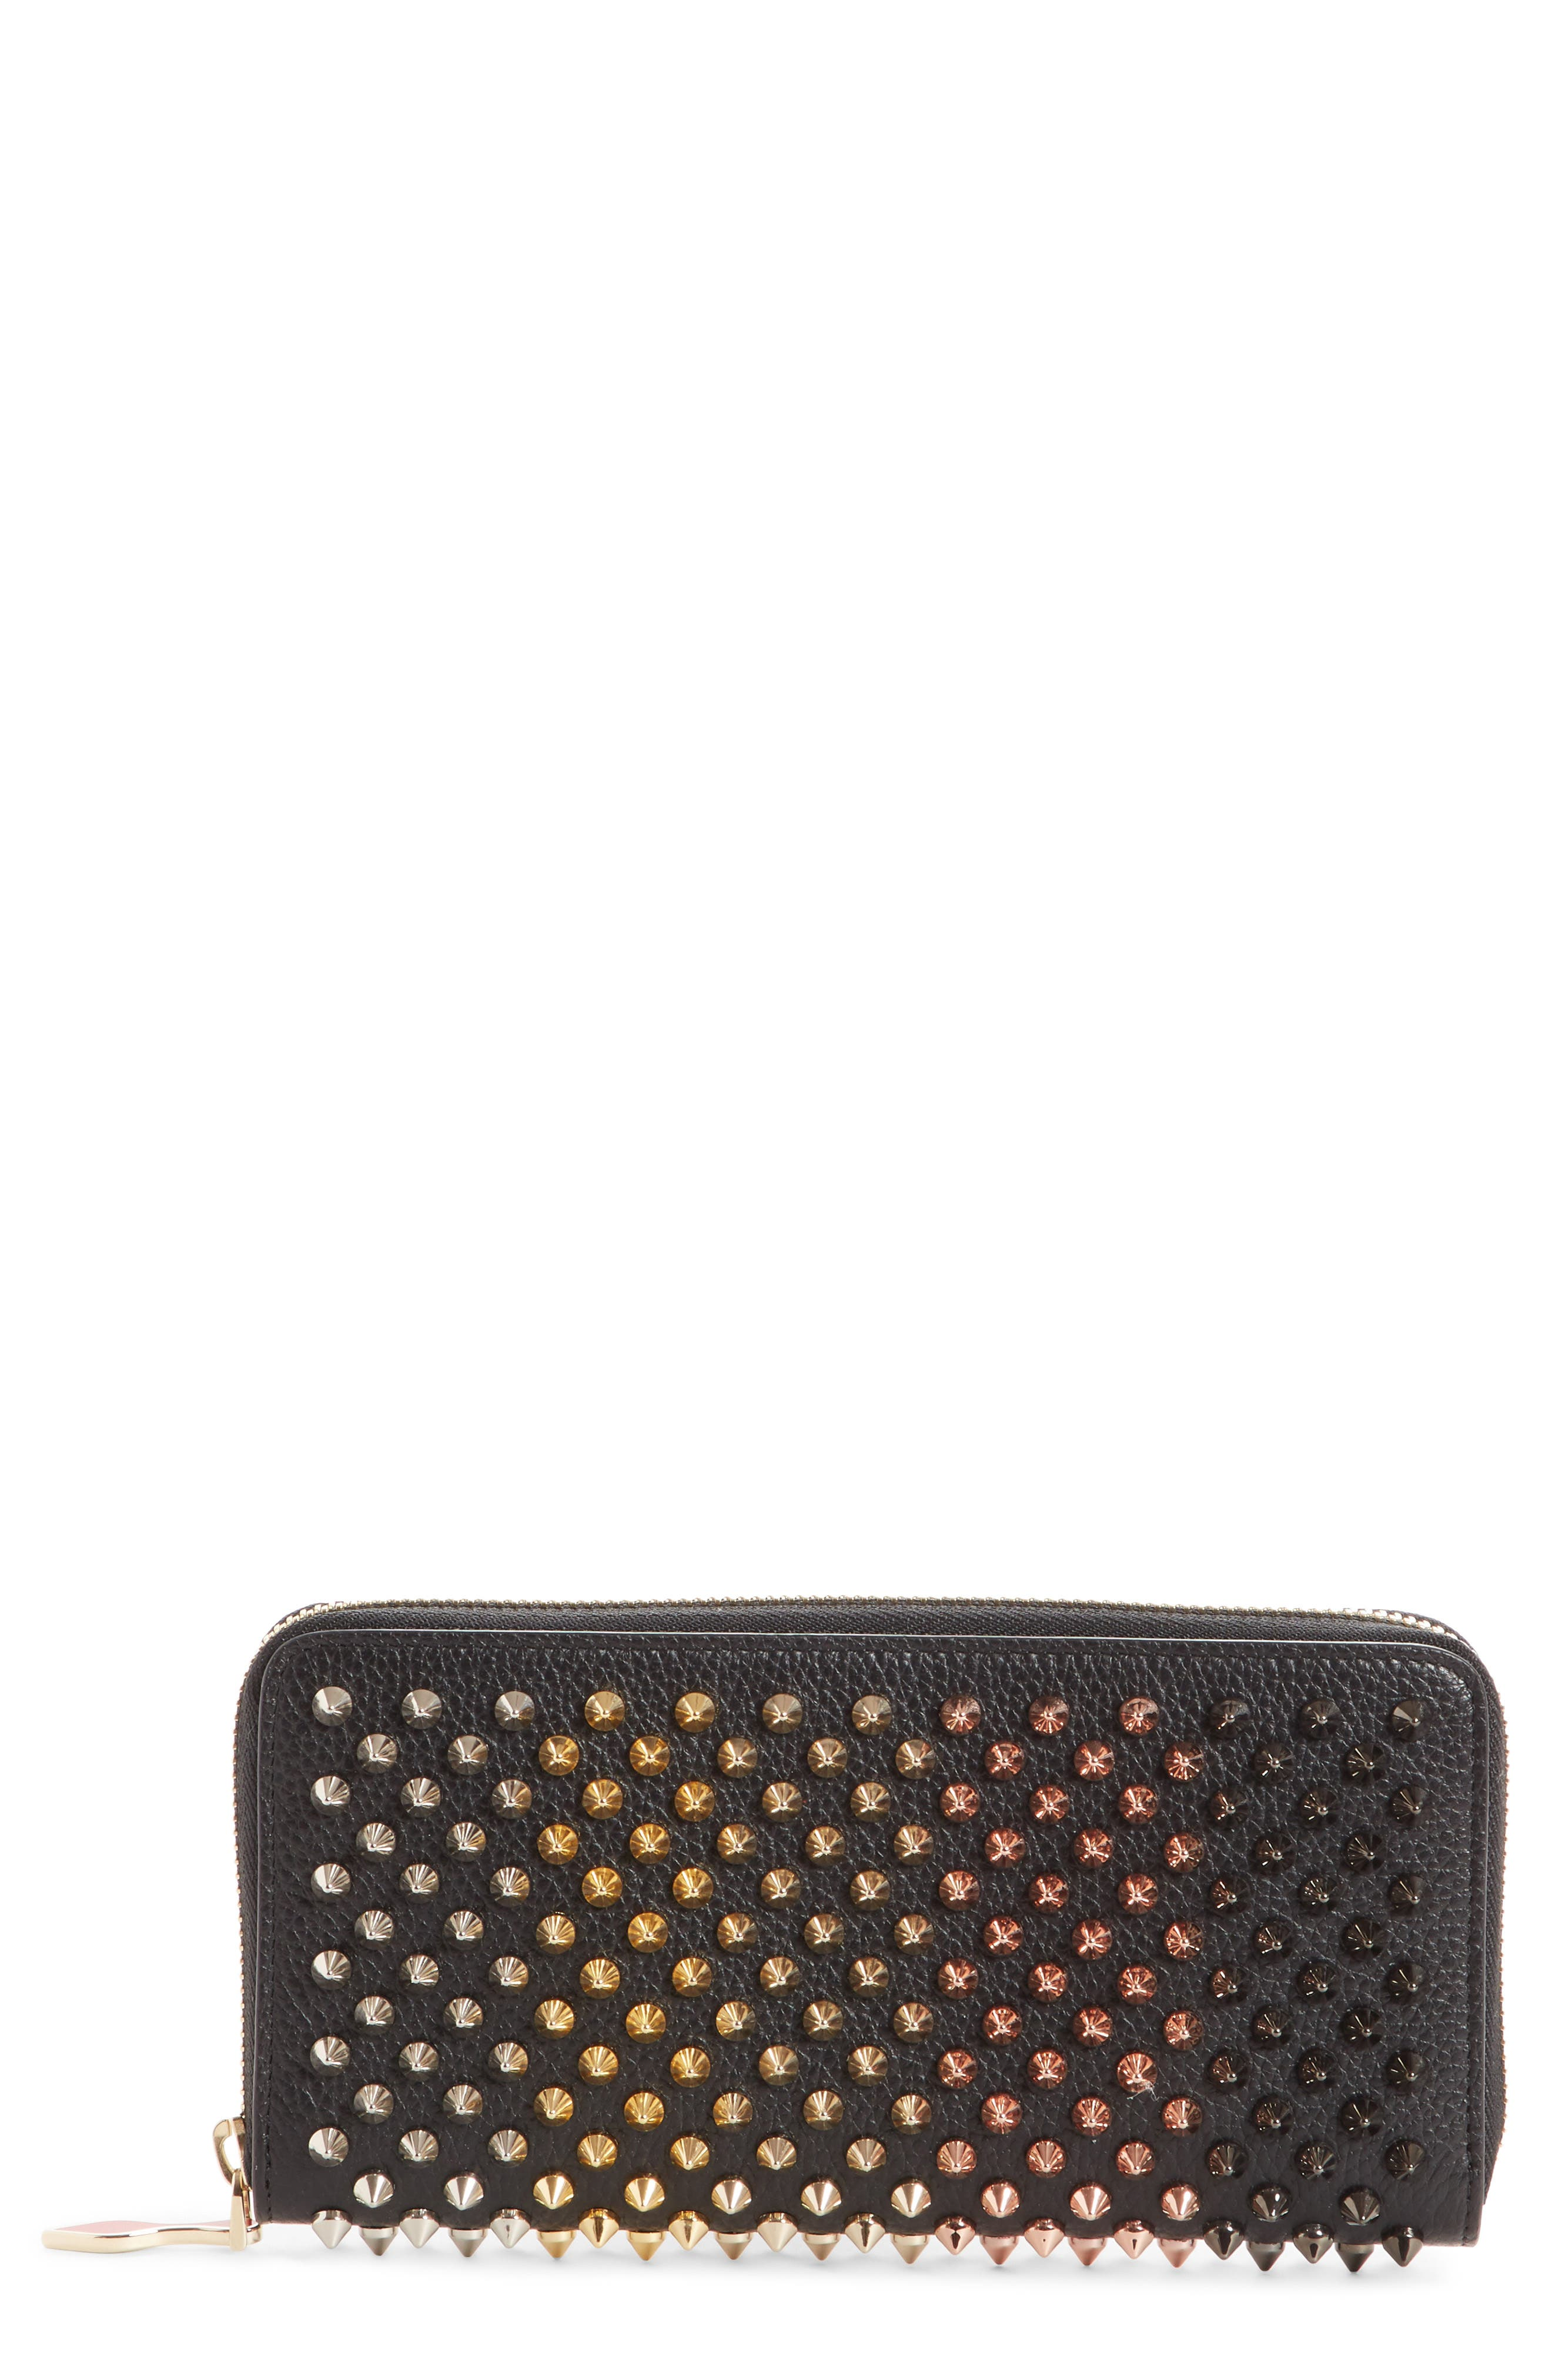 Panettone Spiked Leather Wallet,                             Main thumbnail 1, color,                             BLACK/ MULTIMETAL